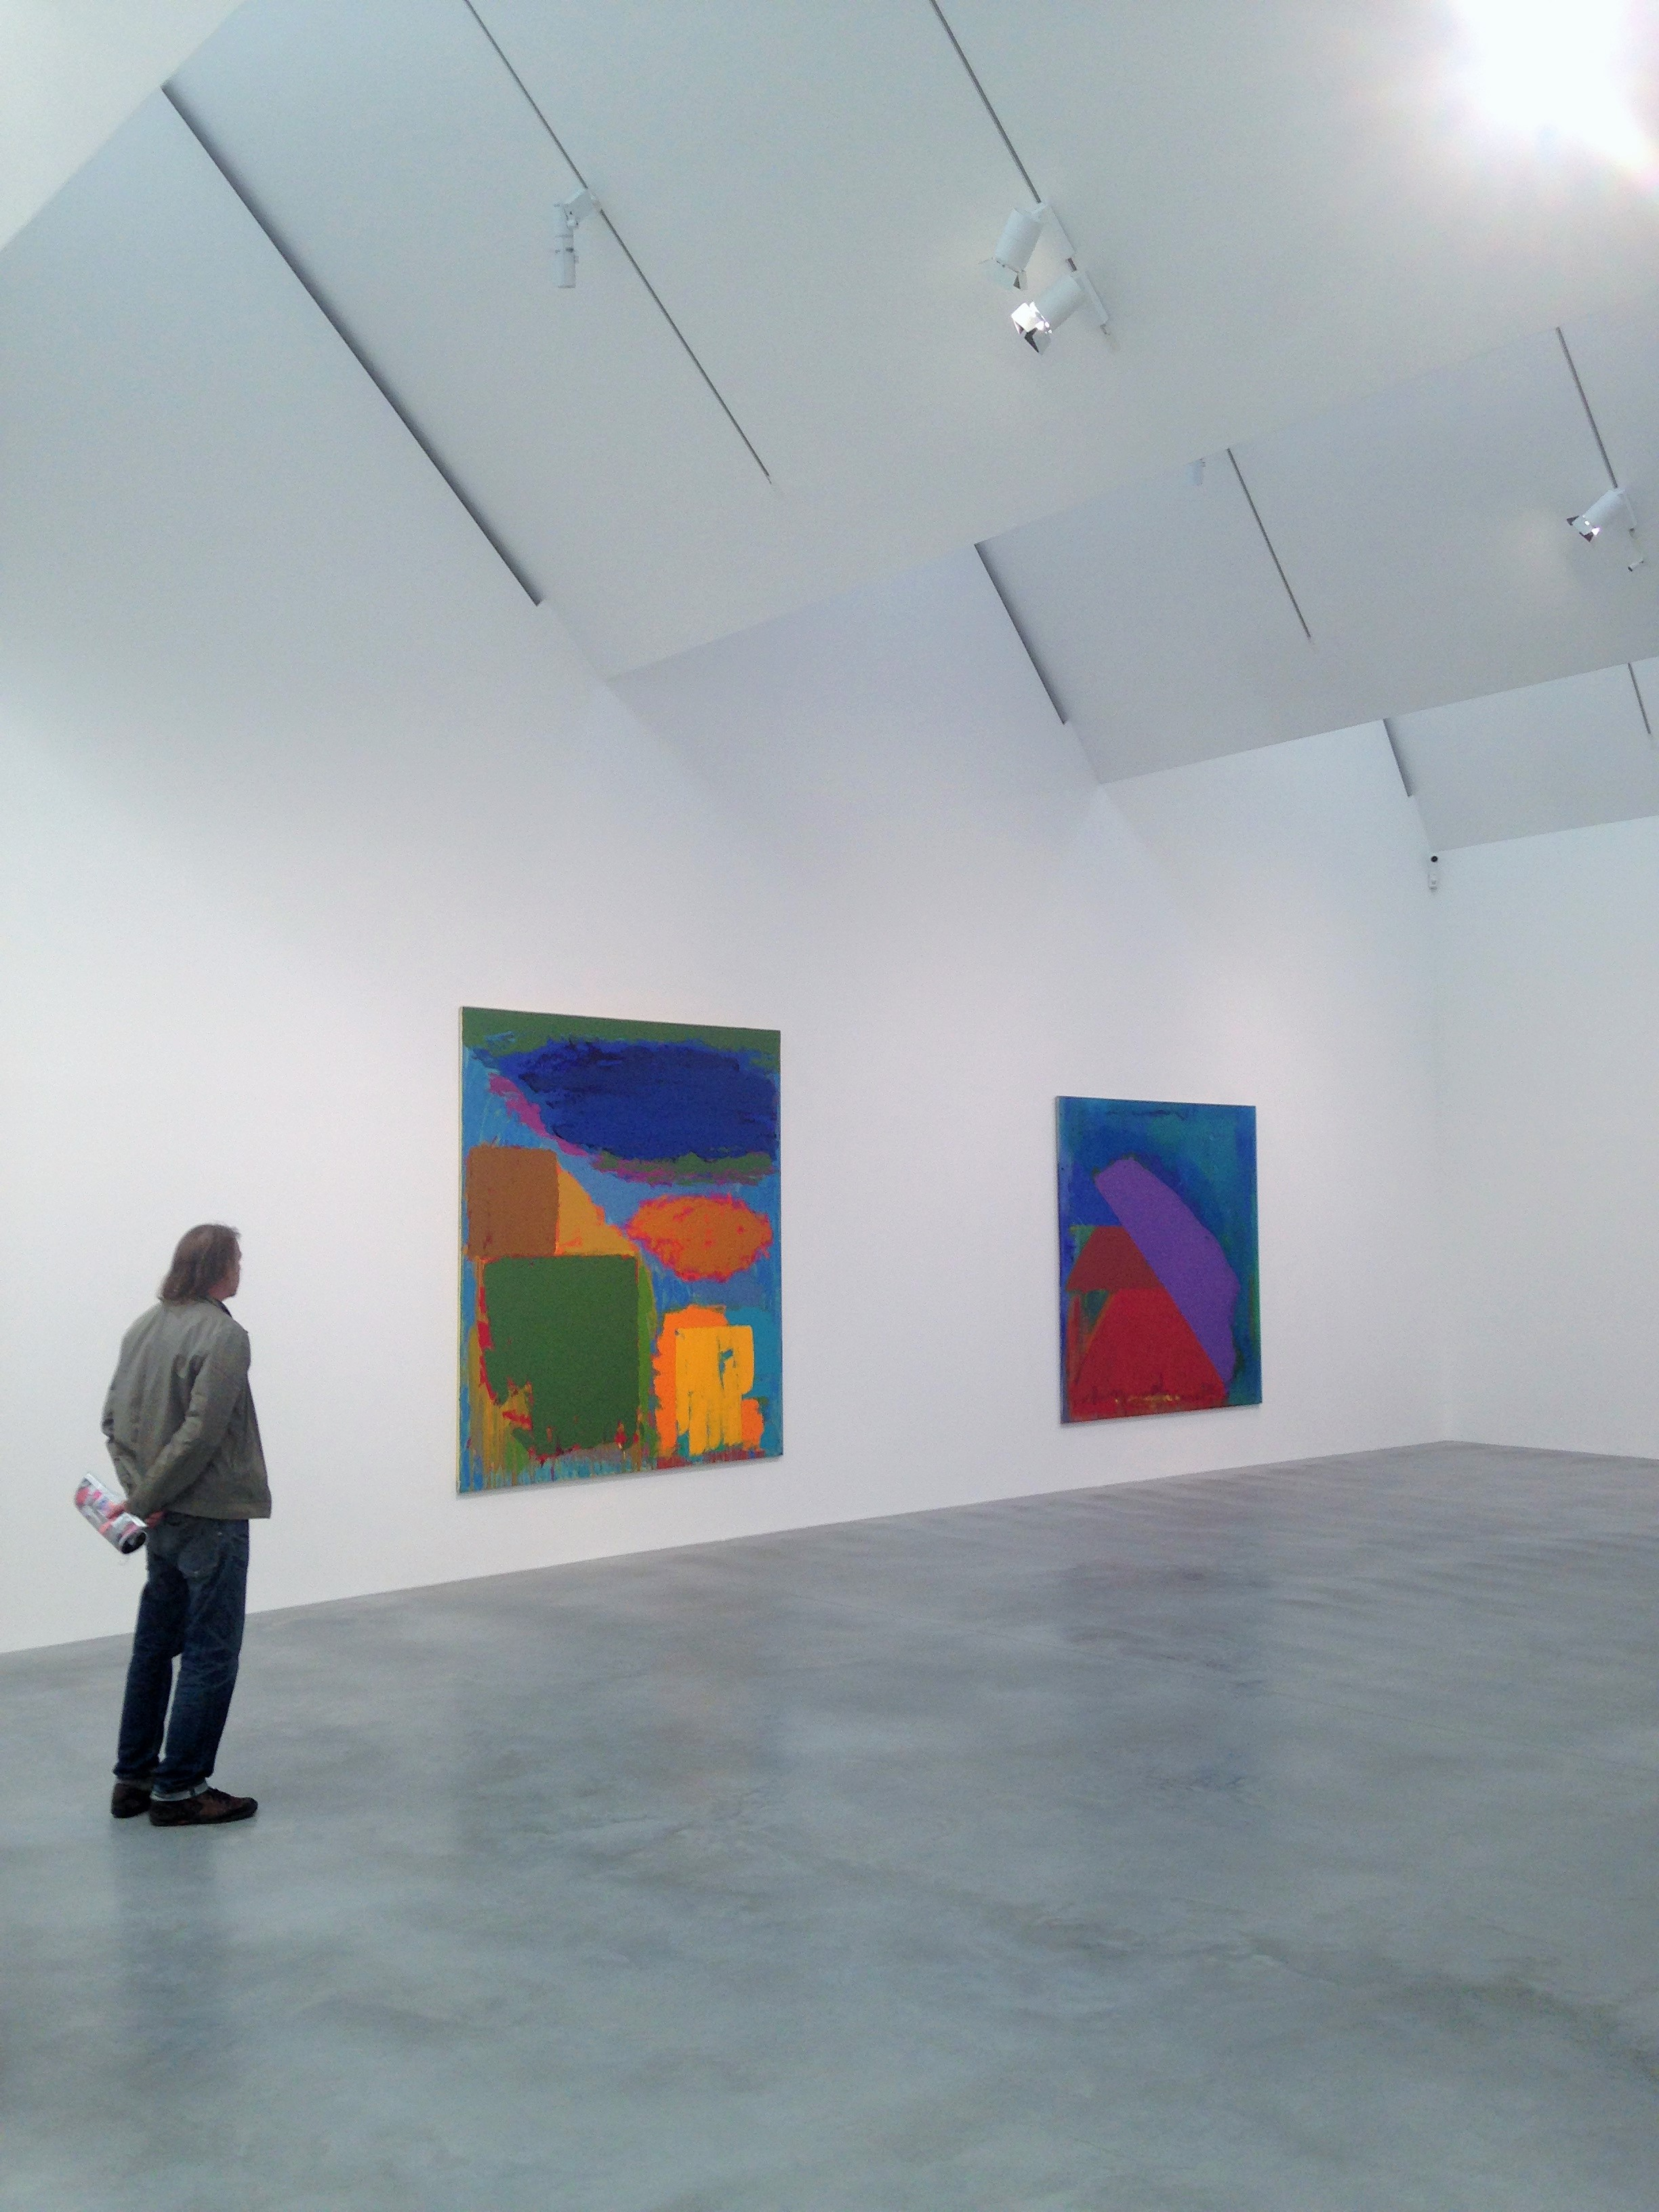 John Hoyland's Power Stations at Newport Street Gallery with sloping roof - kenningtonrunoff.om